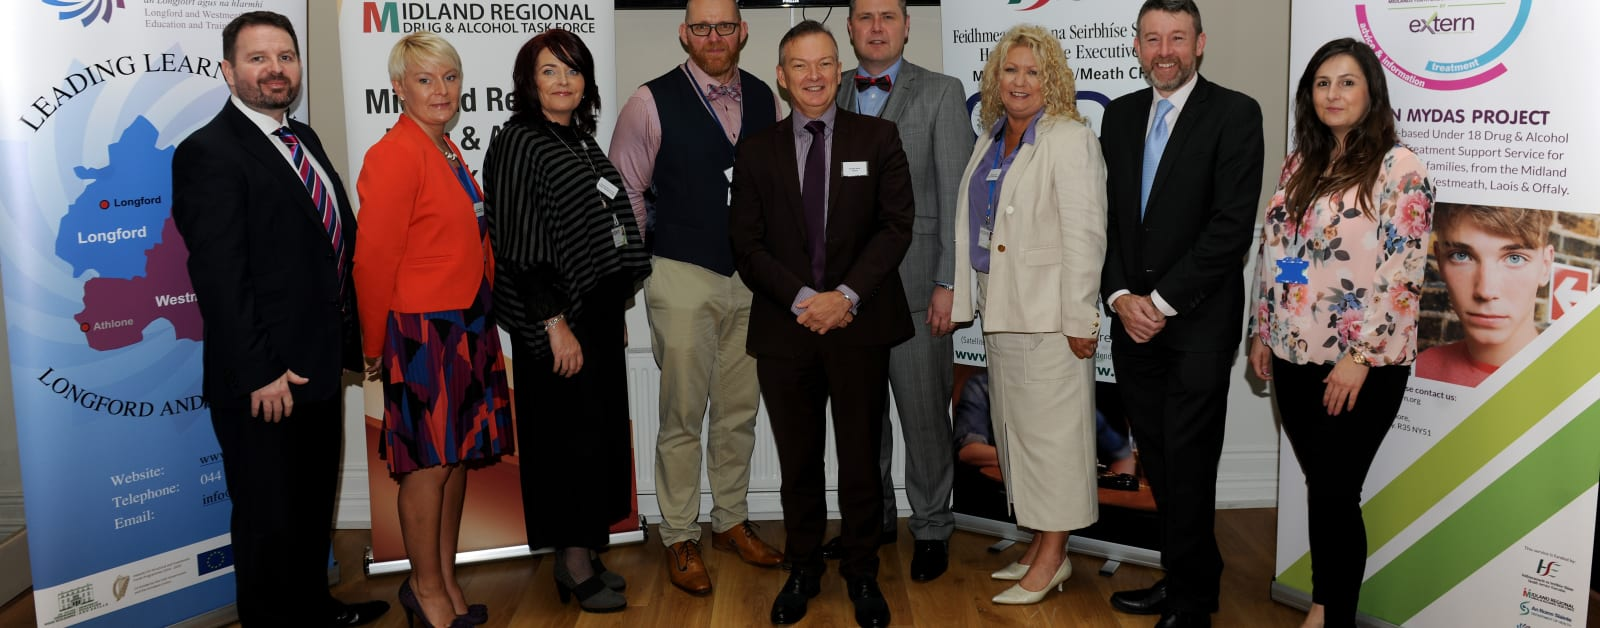 Launch of new Under-18s drug and alcohol programme in Midlands area